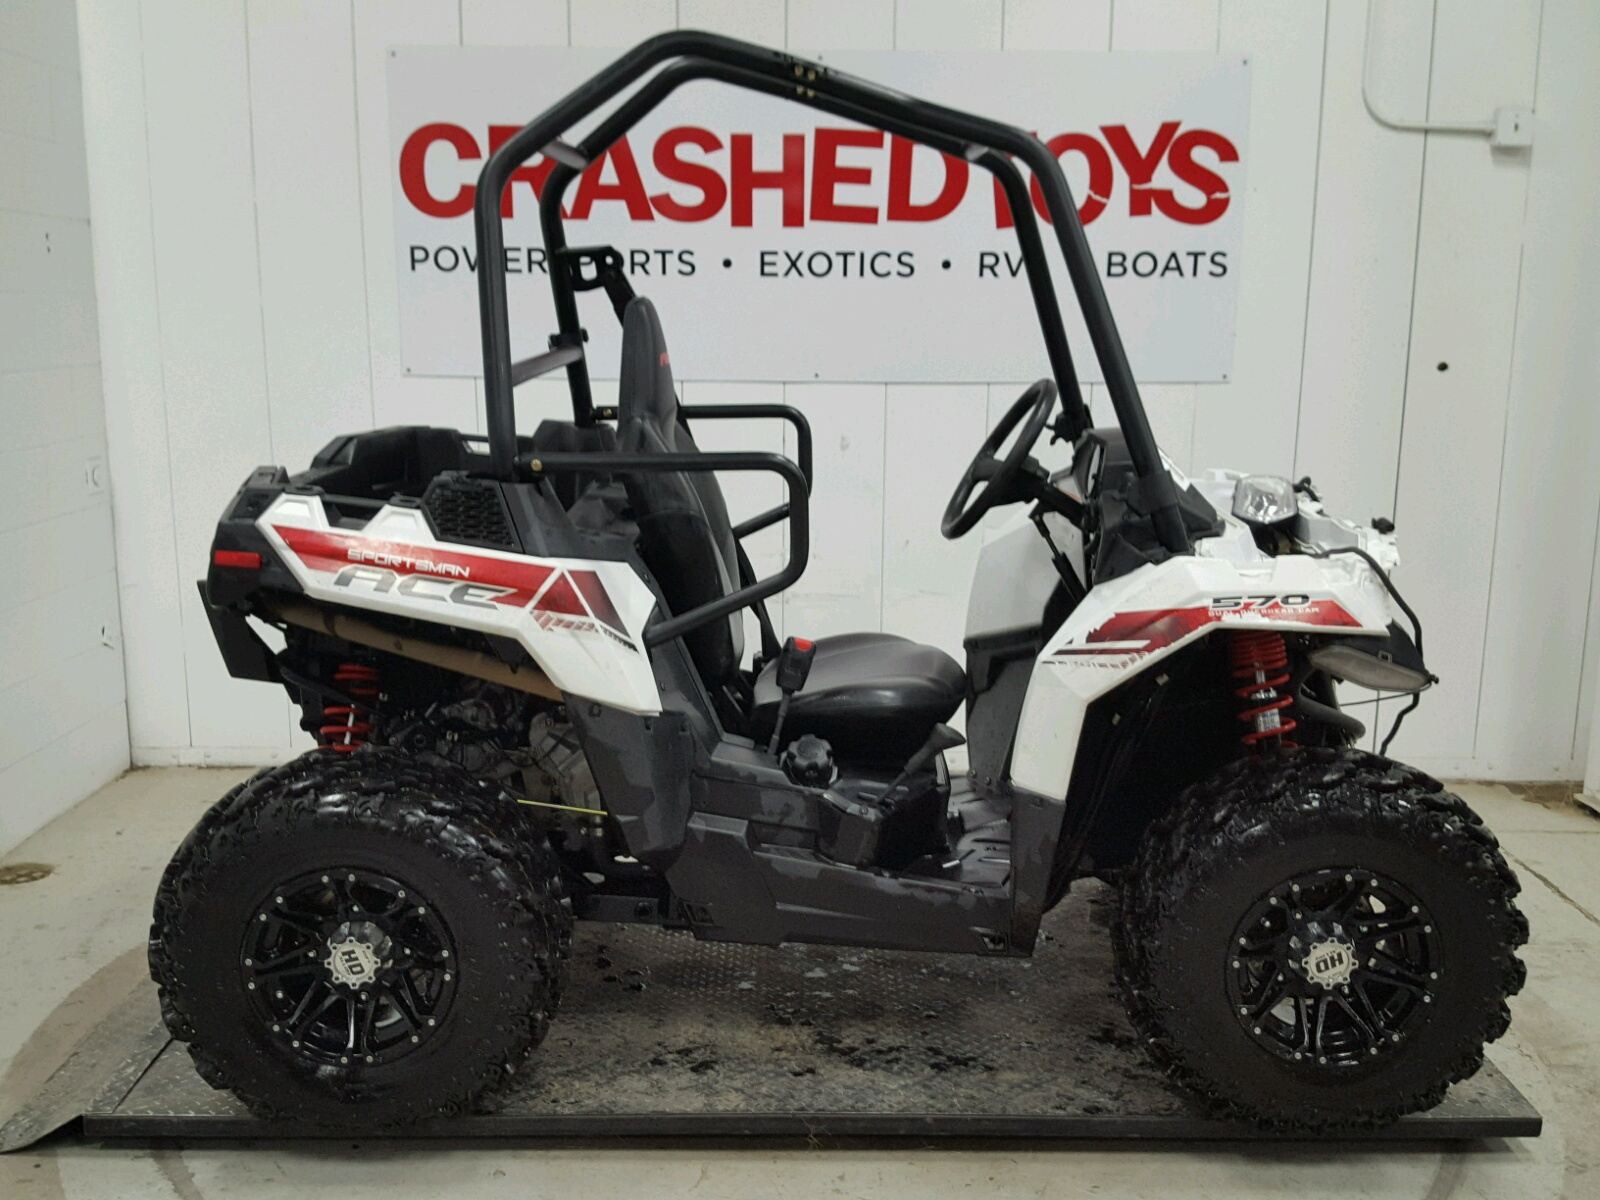 auto auction ended on vin 4xadaa571f7141435 2015 polaris ace 570 in mn crashedtoys east bethel. Black Bedroom Furniture Sets. Home Design Ideas